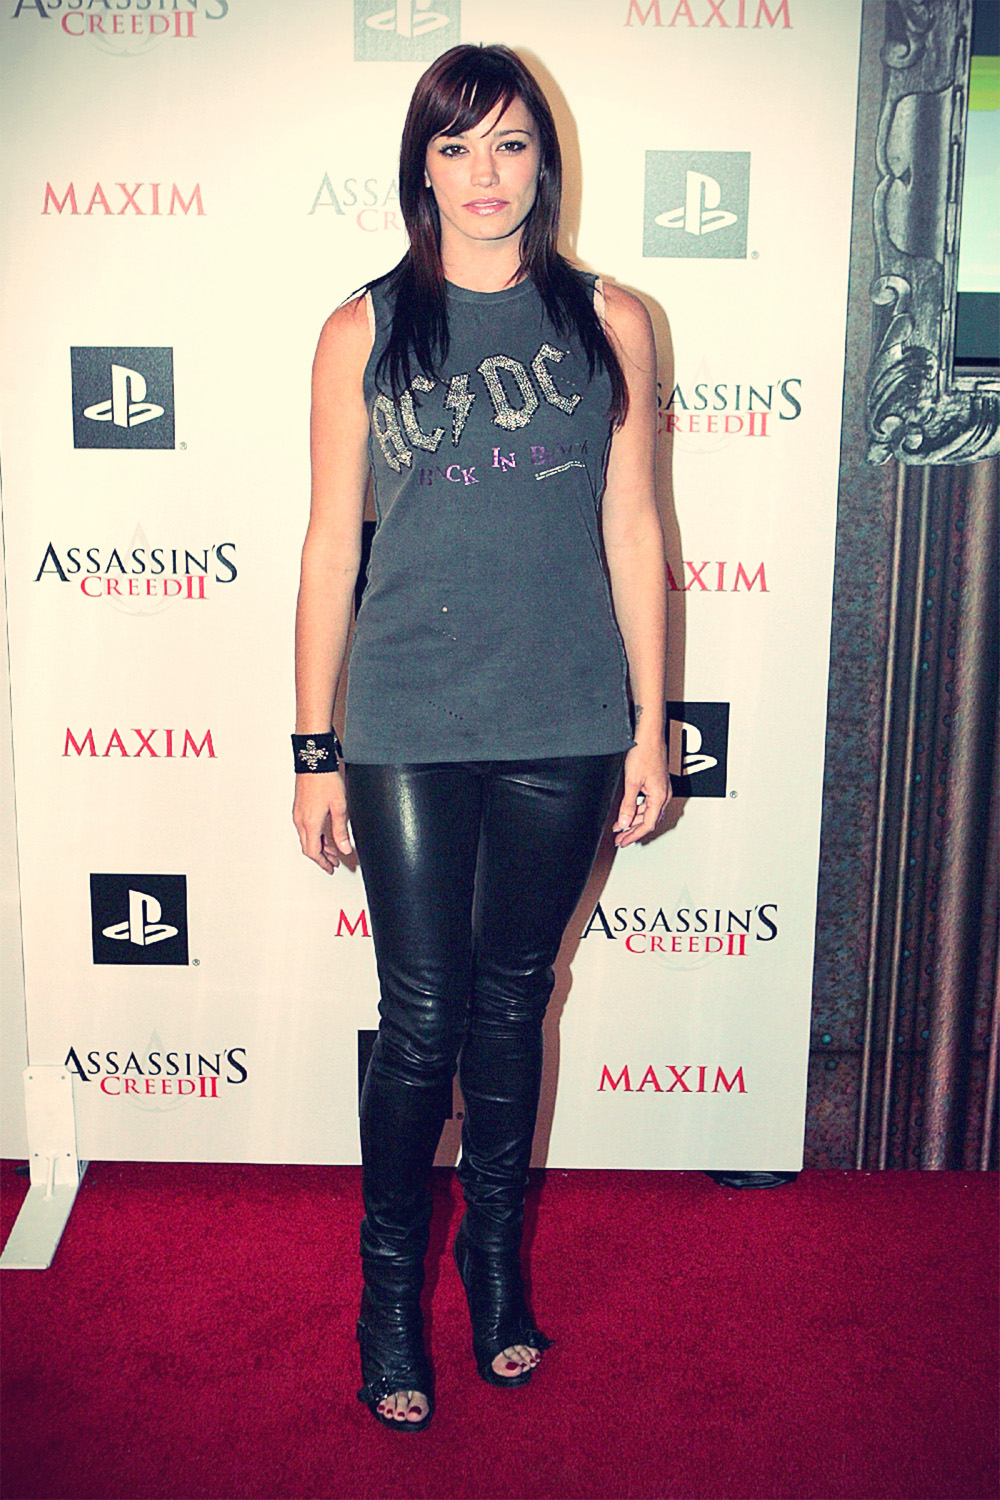 Jessica Sutta at the launch party of Assassins Creed 2